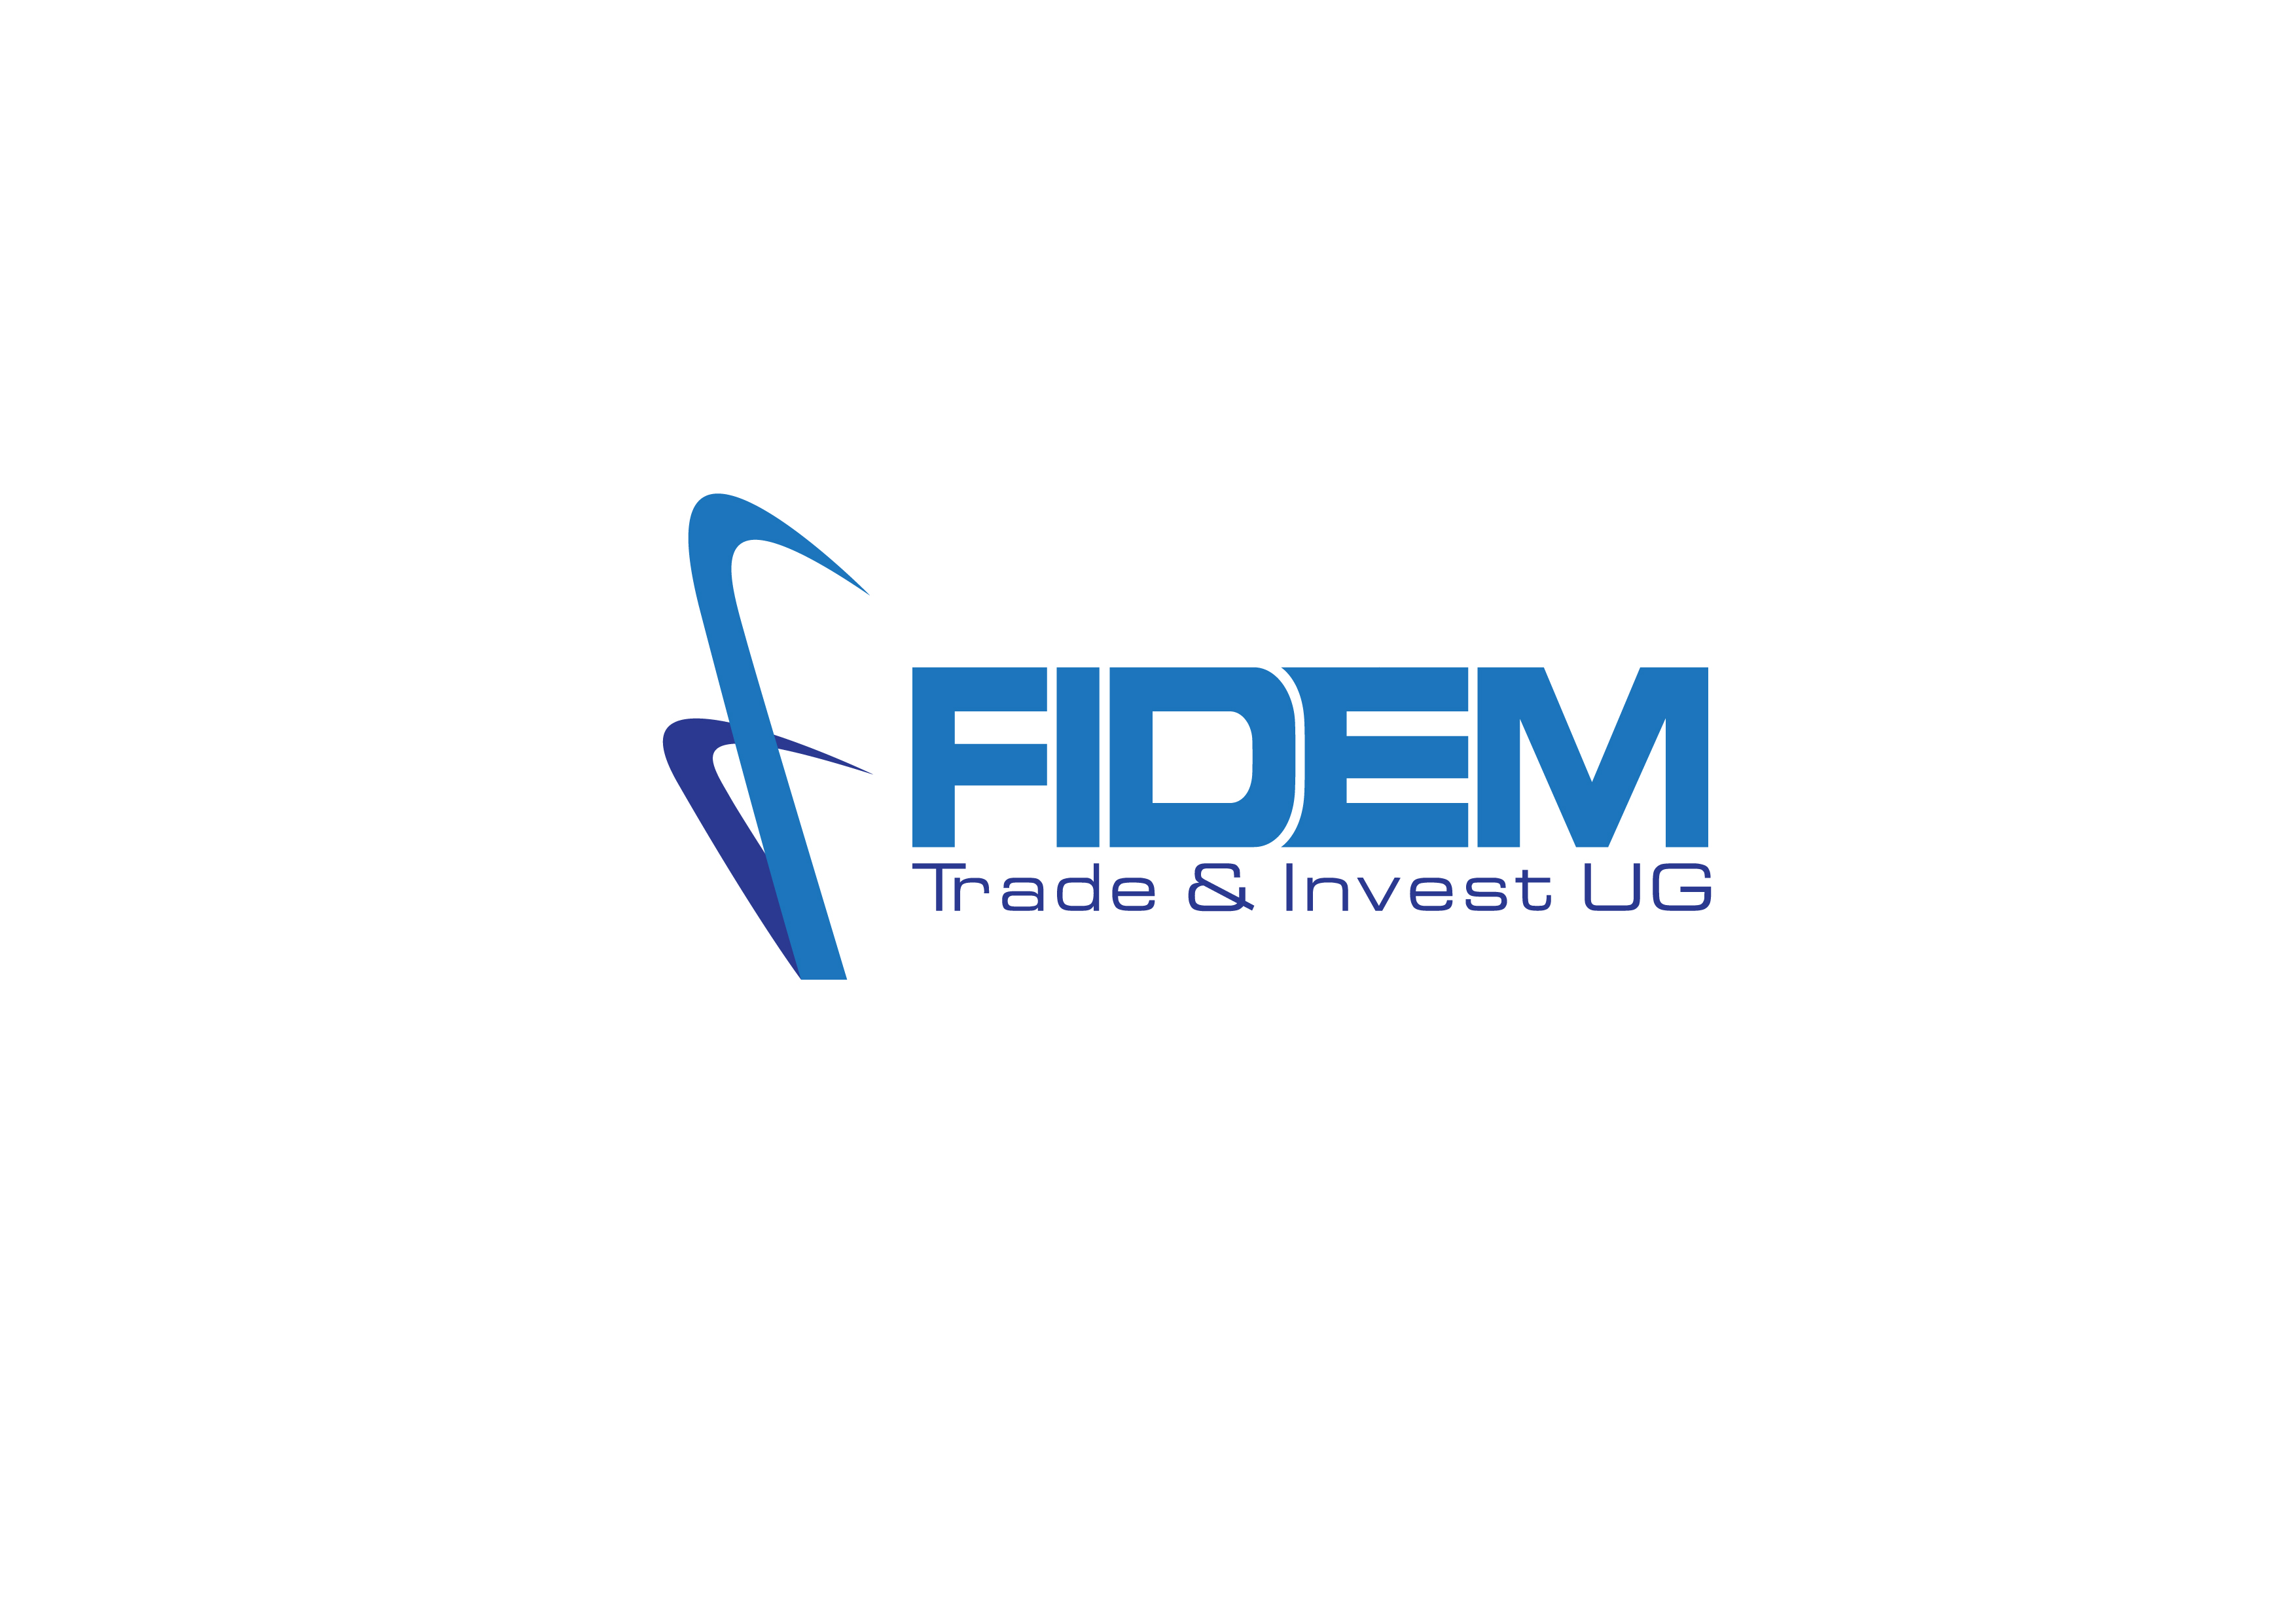 Logo Design by 3draw - Entry No. 706 in the Logo Design Contest Professional Logo Design for FIDEM Trade & Invest UG.